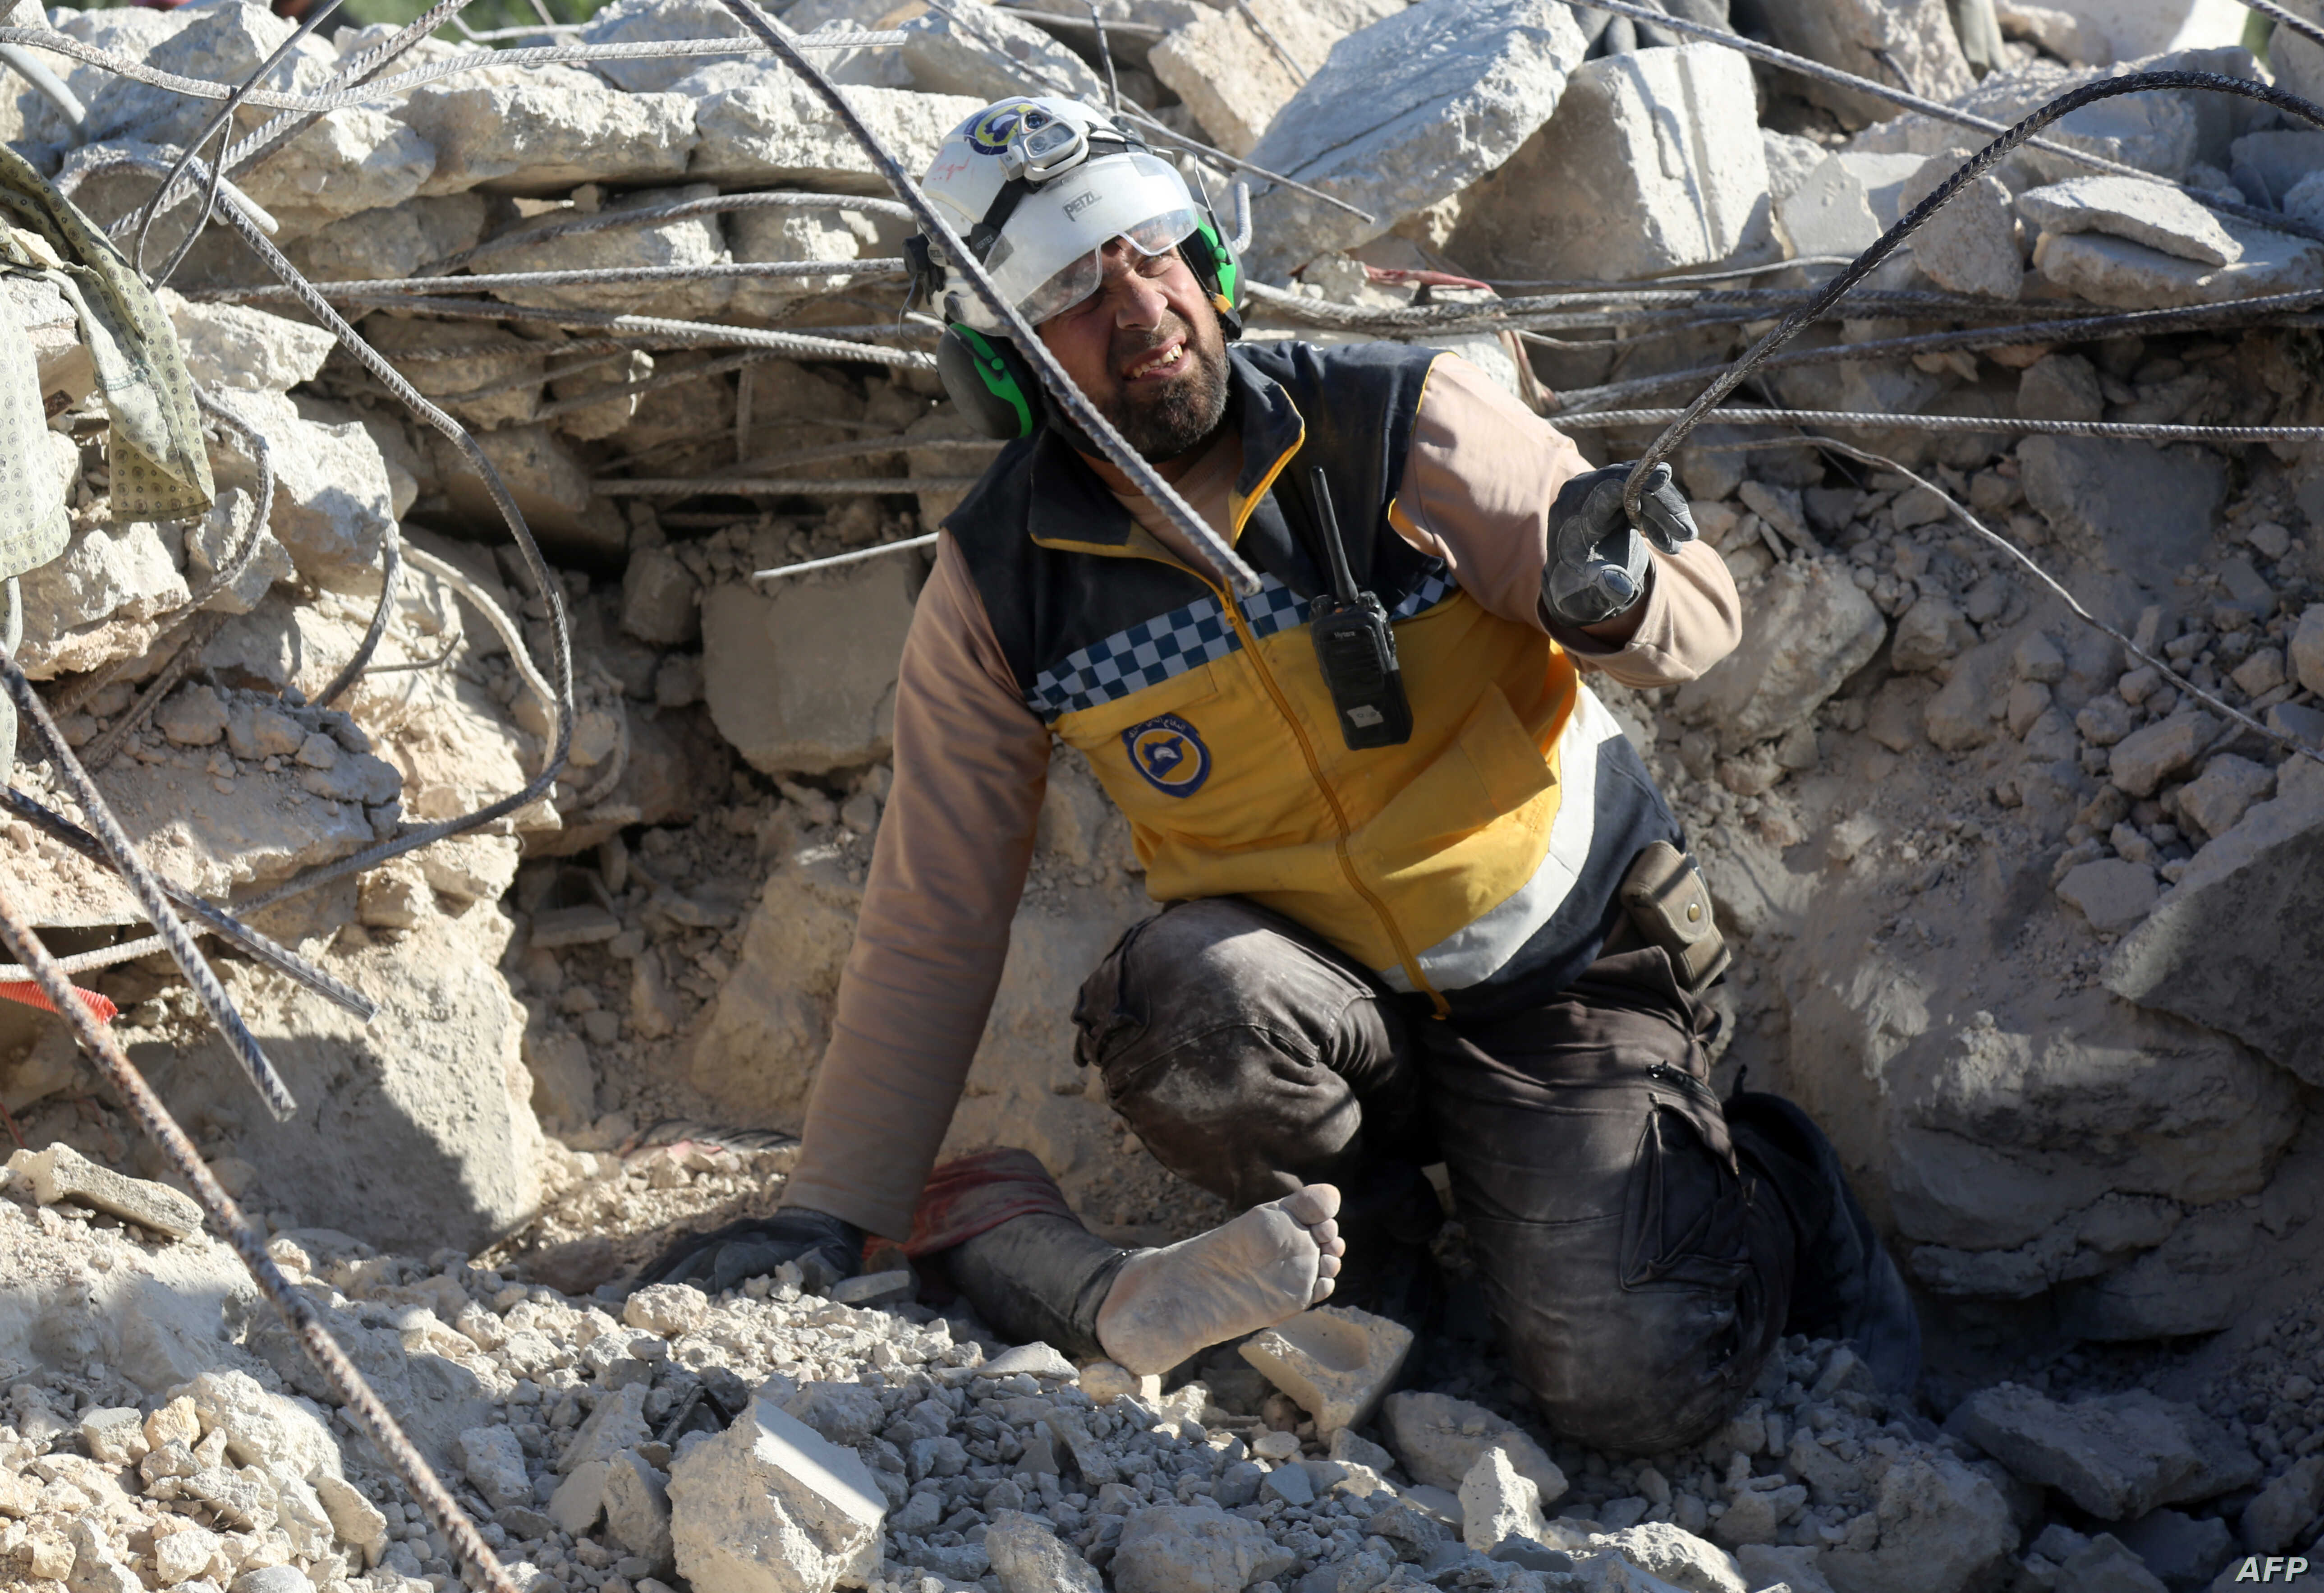 A member of the opposition Syrian Civil Defense reacts as he prepares to help remove the body of a woman buried under the rubble of a building, following shelling by government forces in the village of Rakaya Sijneh, Idlib province, Syria, May 4,2019...